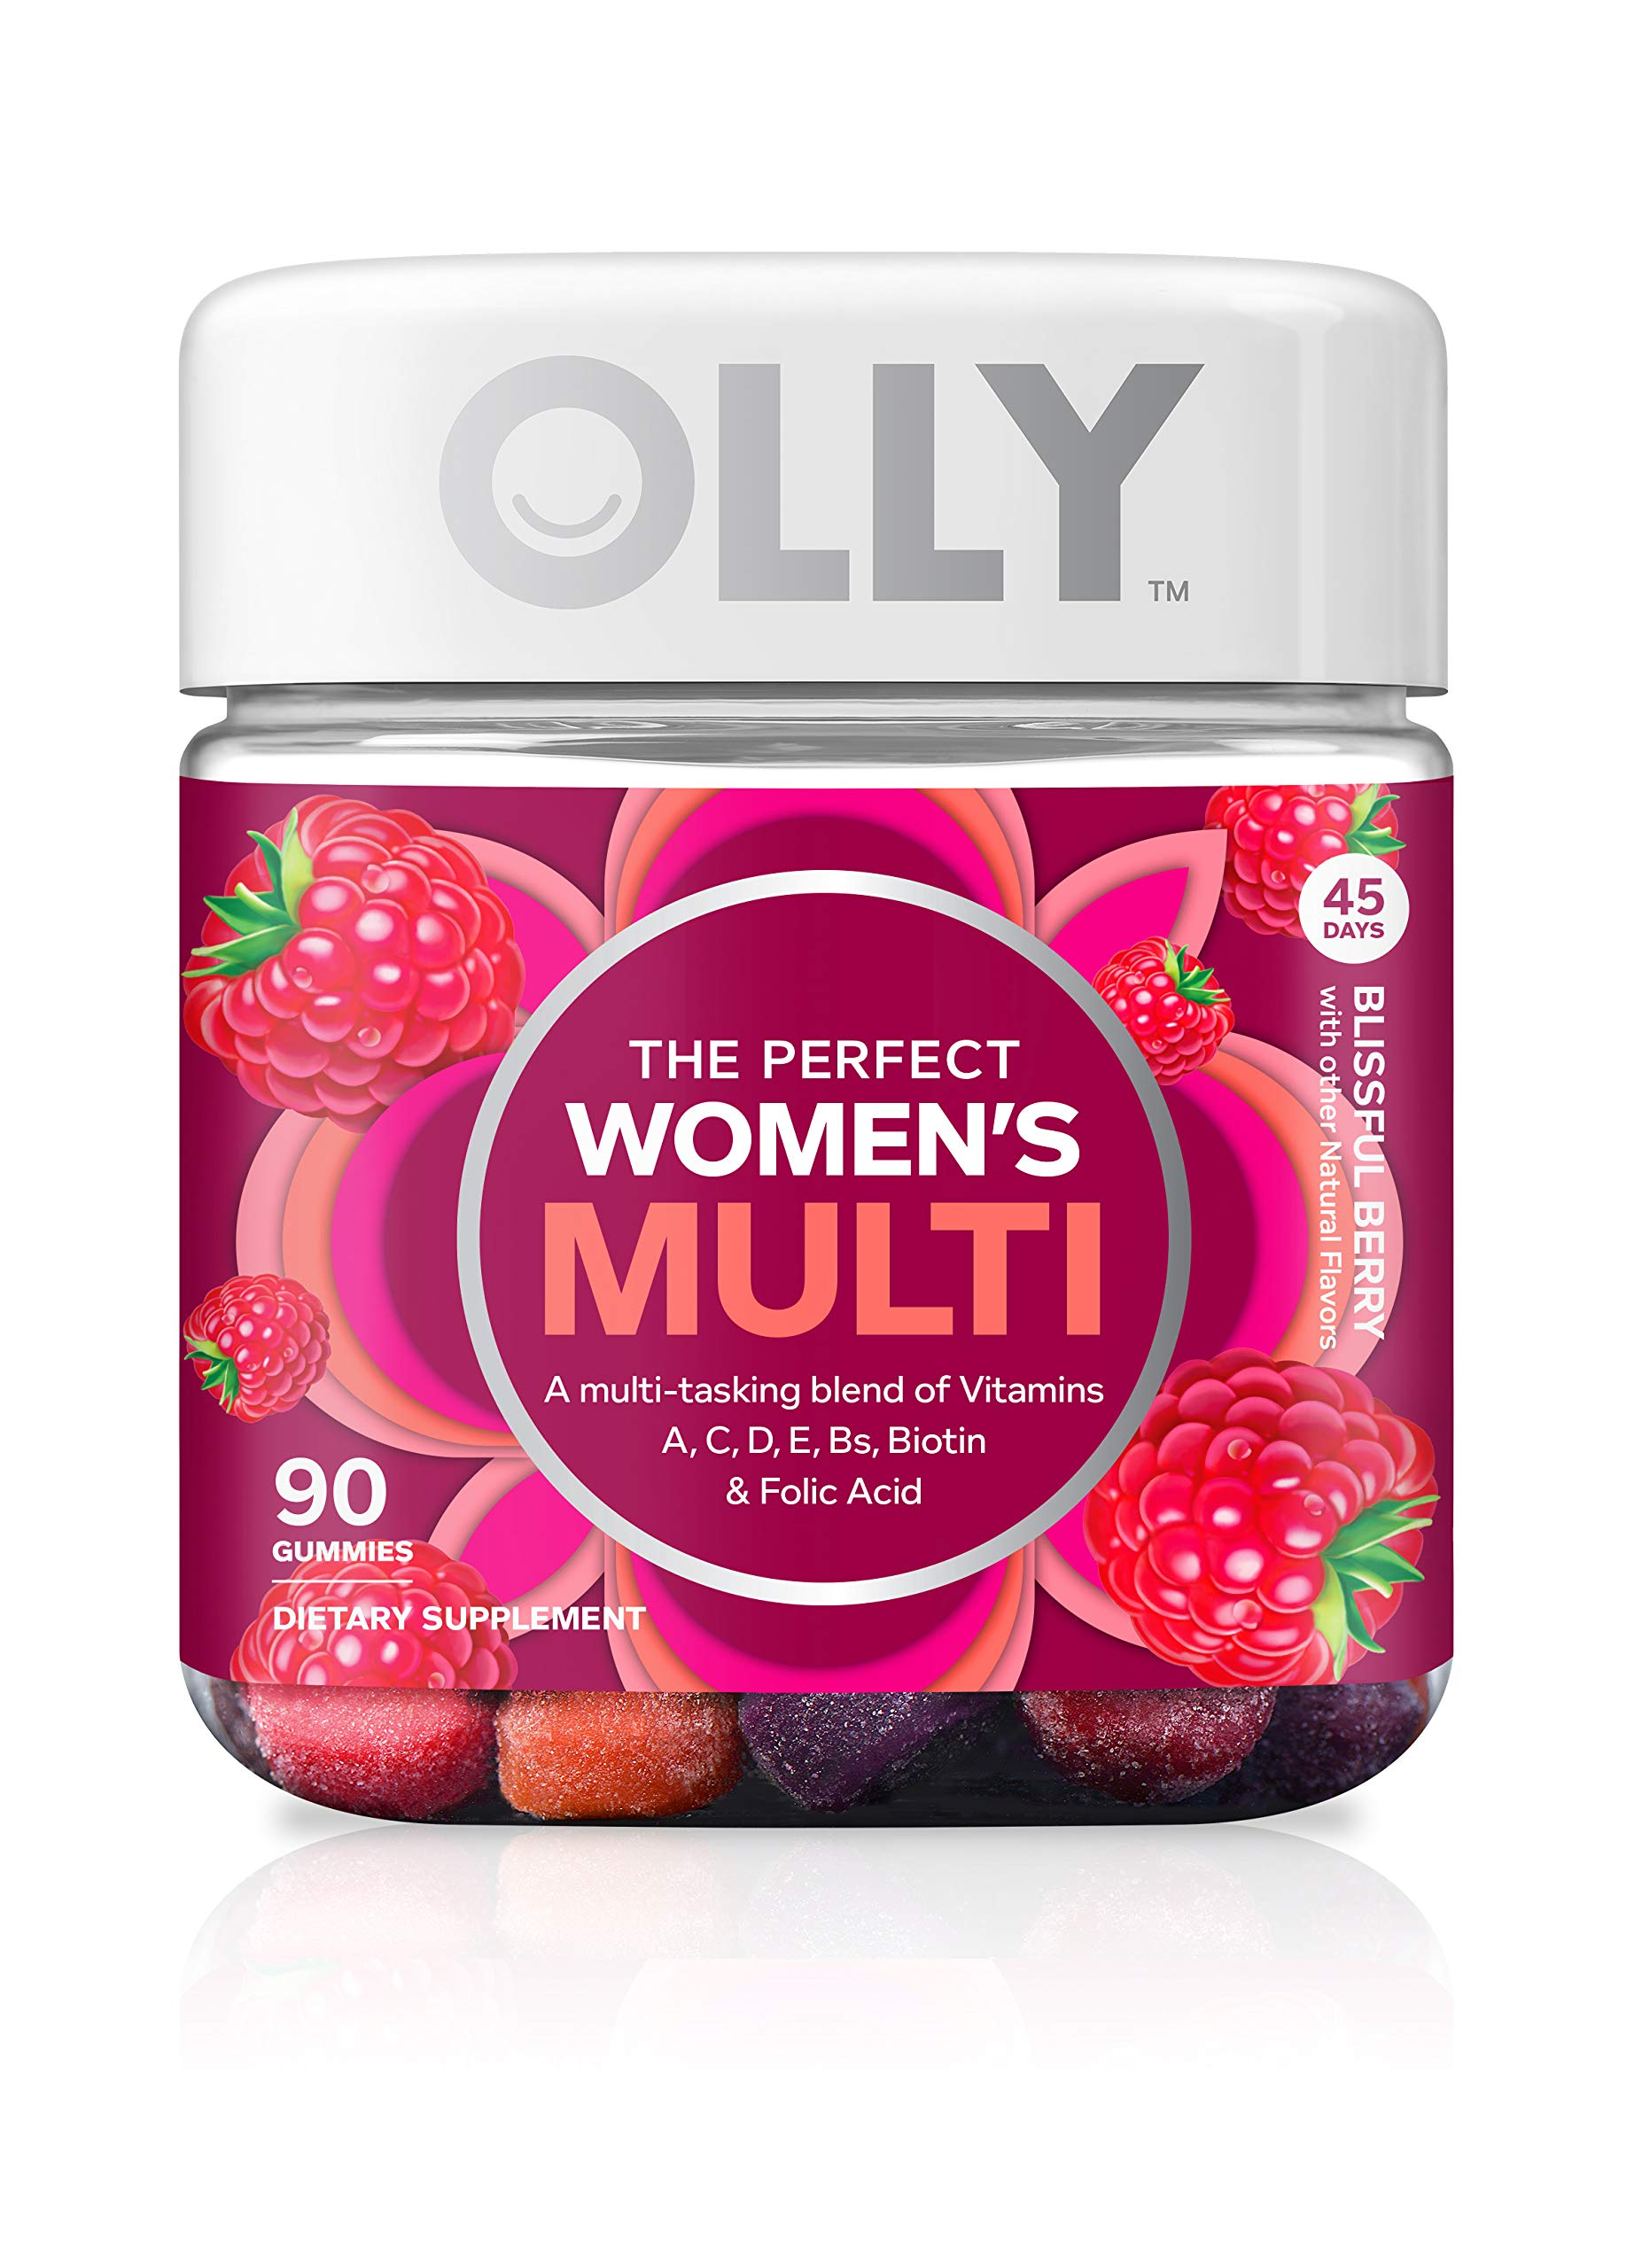 OLLY Perfect Womens Gummy Multivitamin with Biotin, 45 Day Supply (90 Gummies), Vitamins A, D, C, E, Biotin, Folic Acid, Chewable Supplement